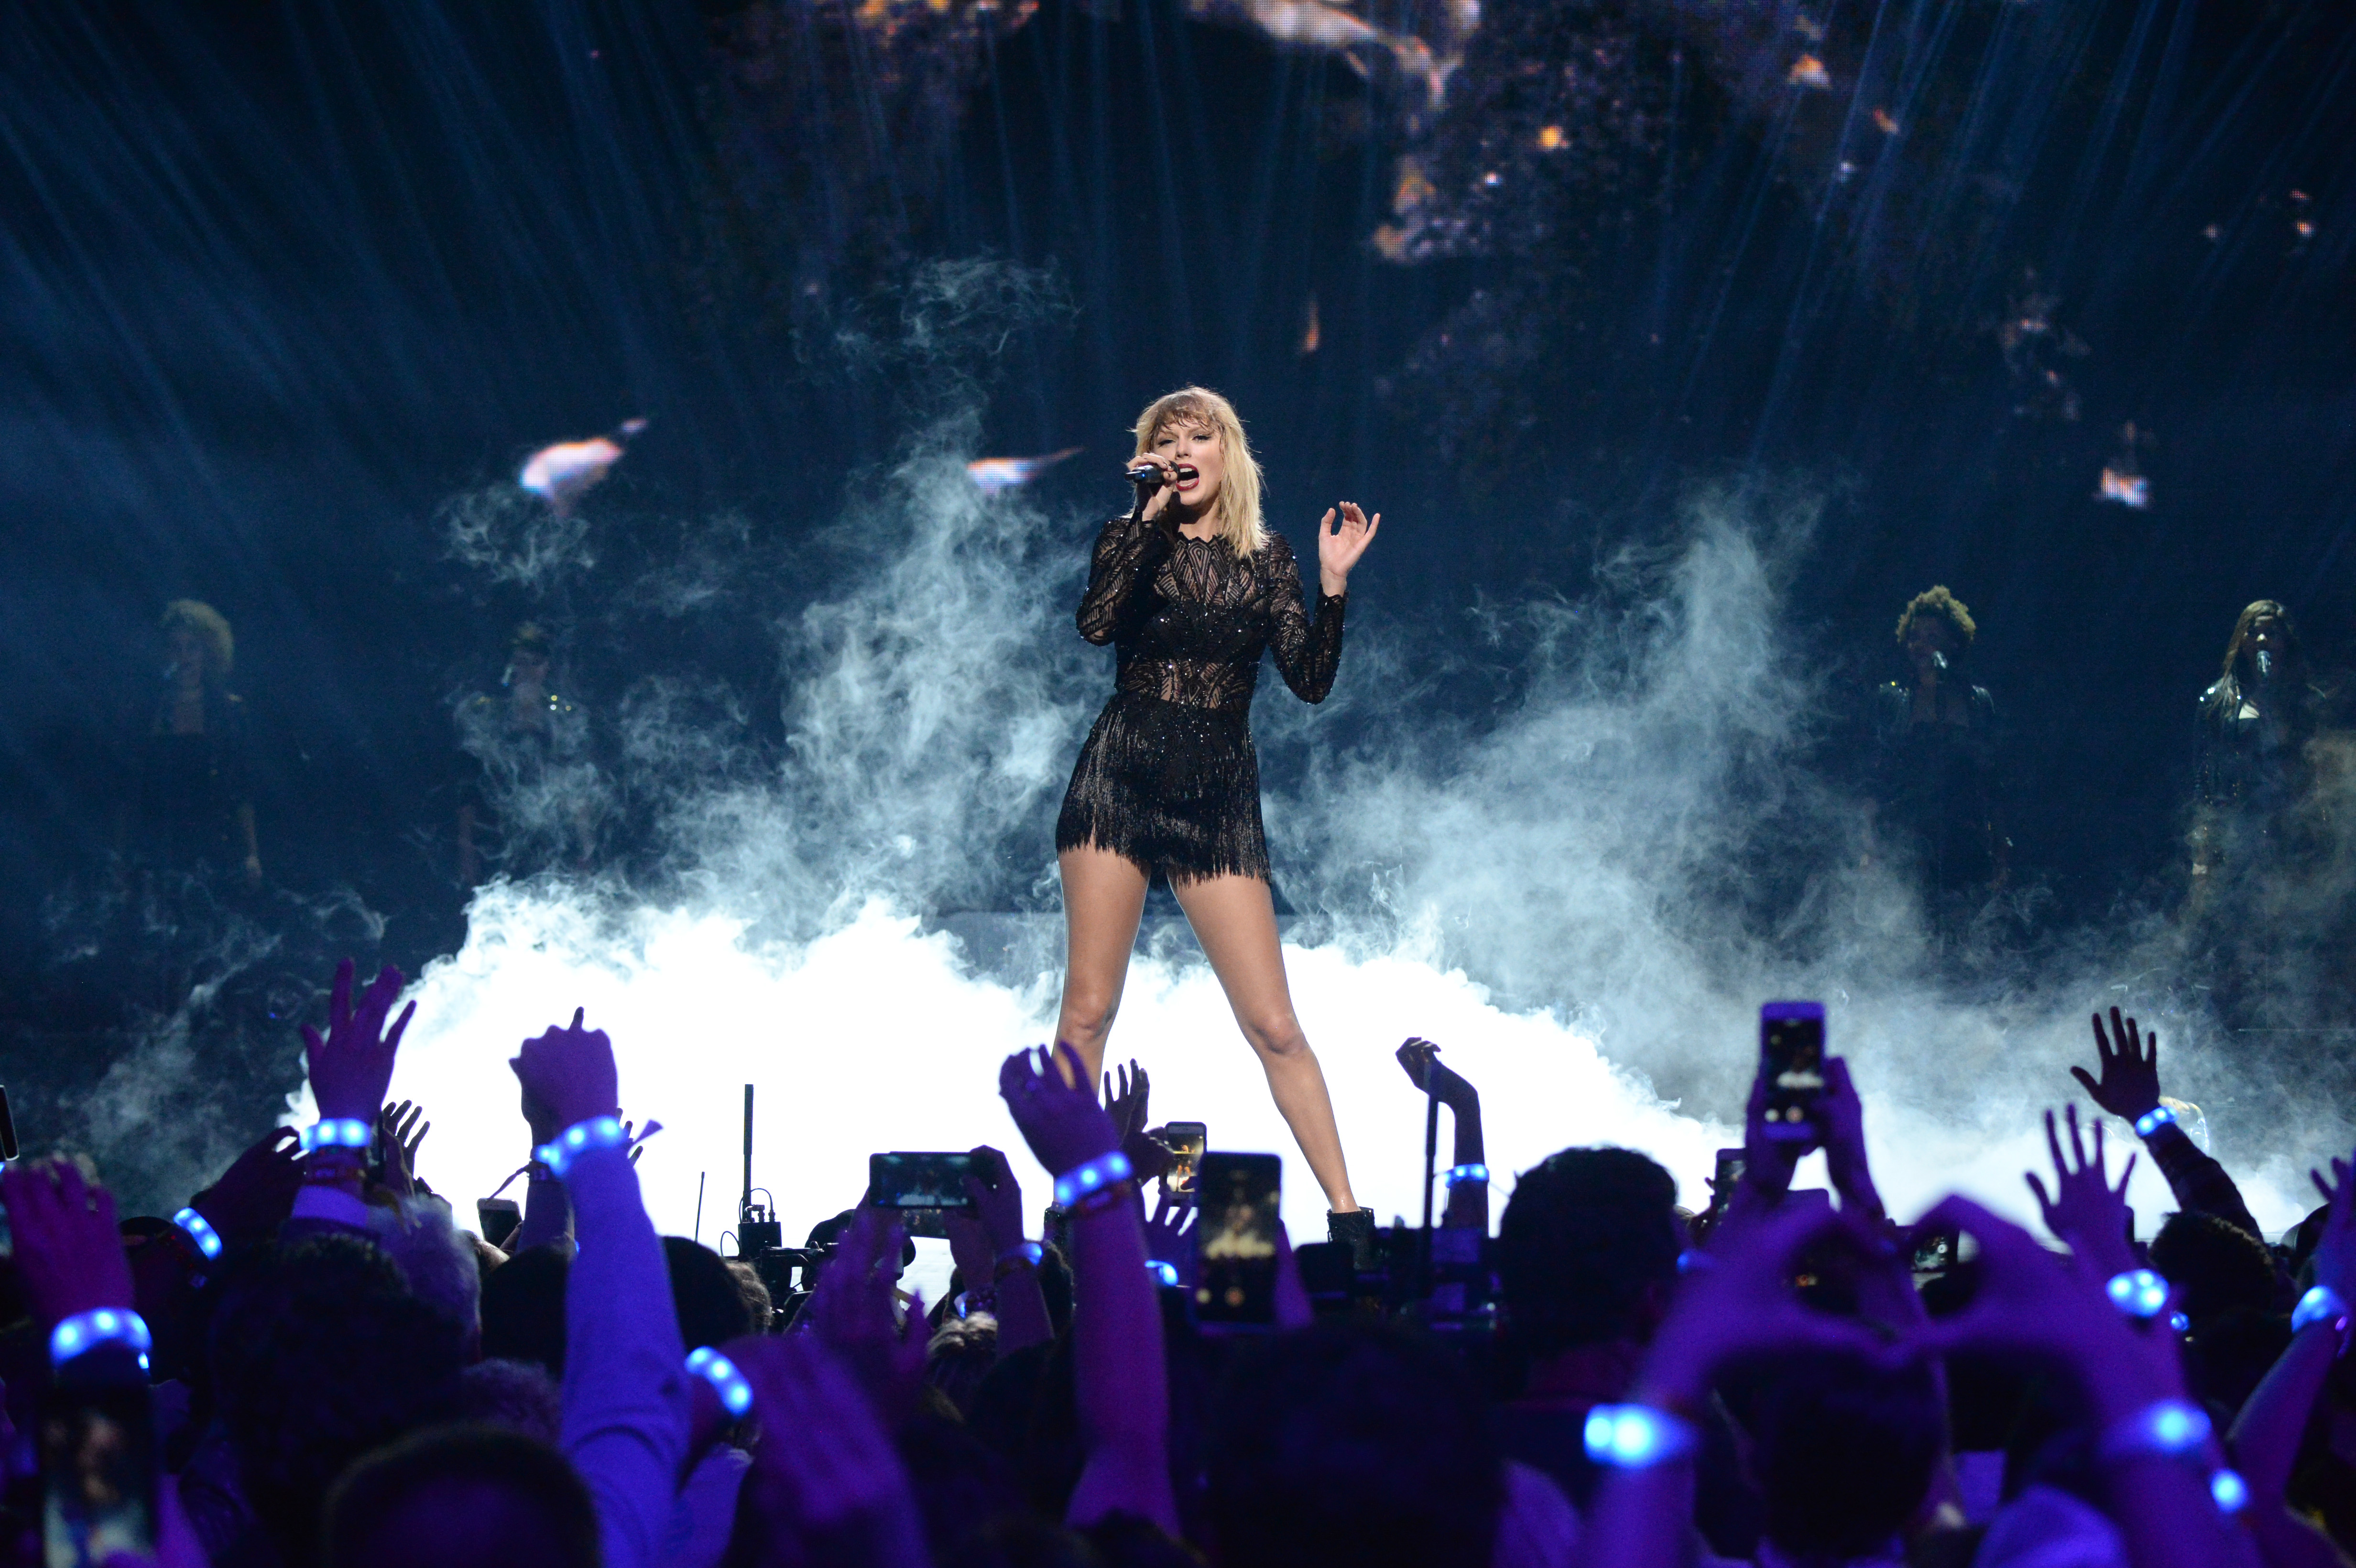 HOUSTON, TX - FEB. 04: Musician Taylor Swift performs onstage during the 2017 DIRECTV NOW Super Saturday Night Concert